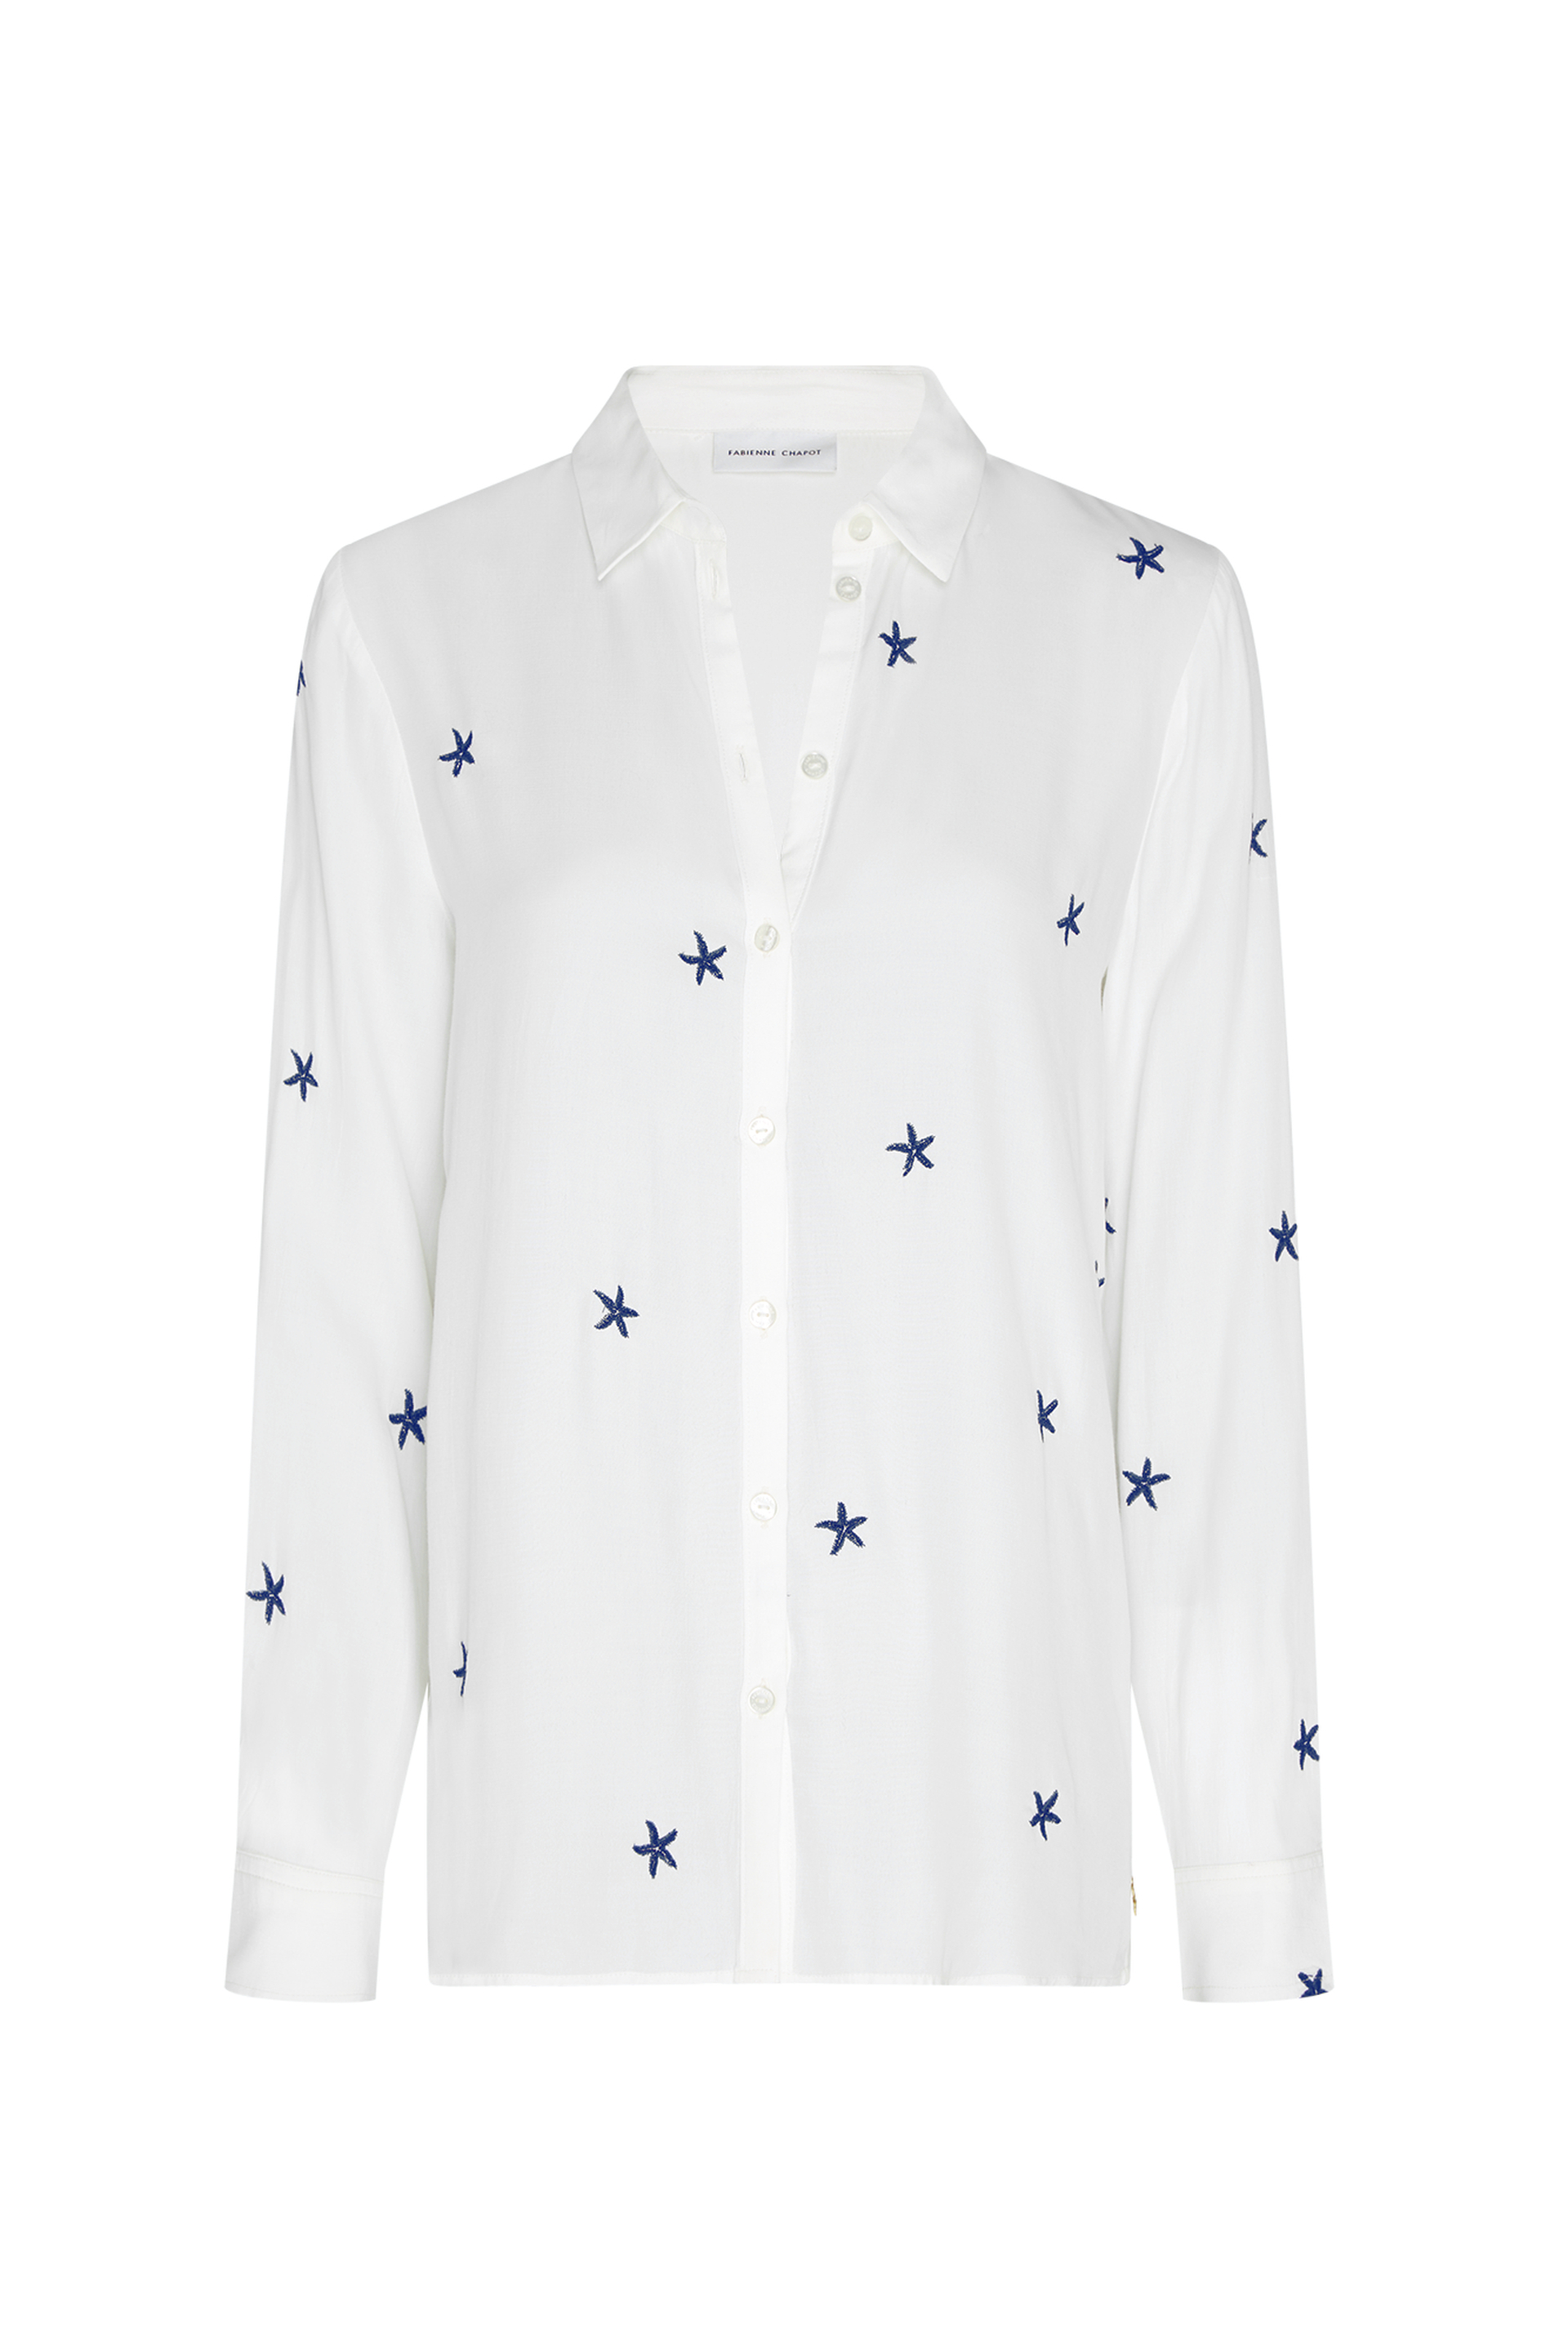 Fabienne Chapot Kitty Blouse in Blue Stars